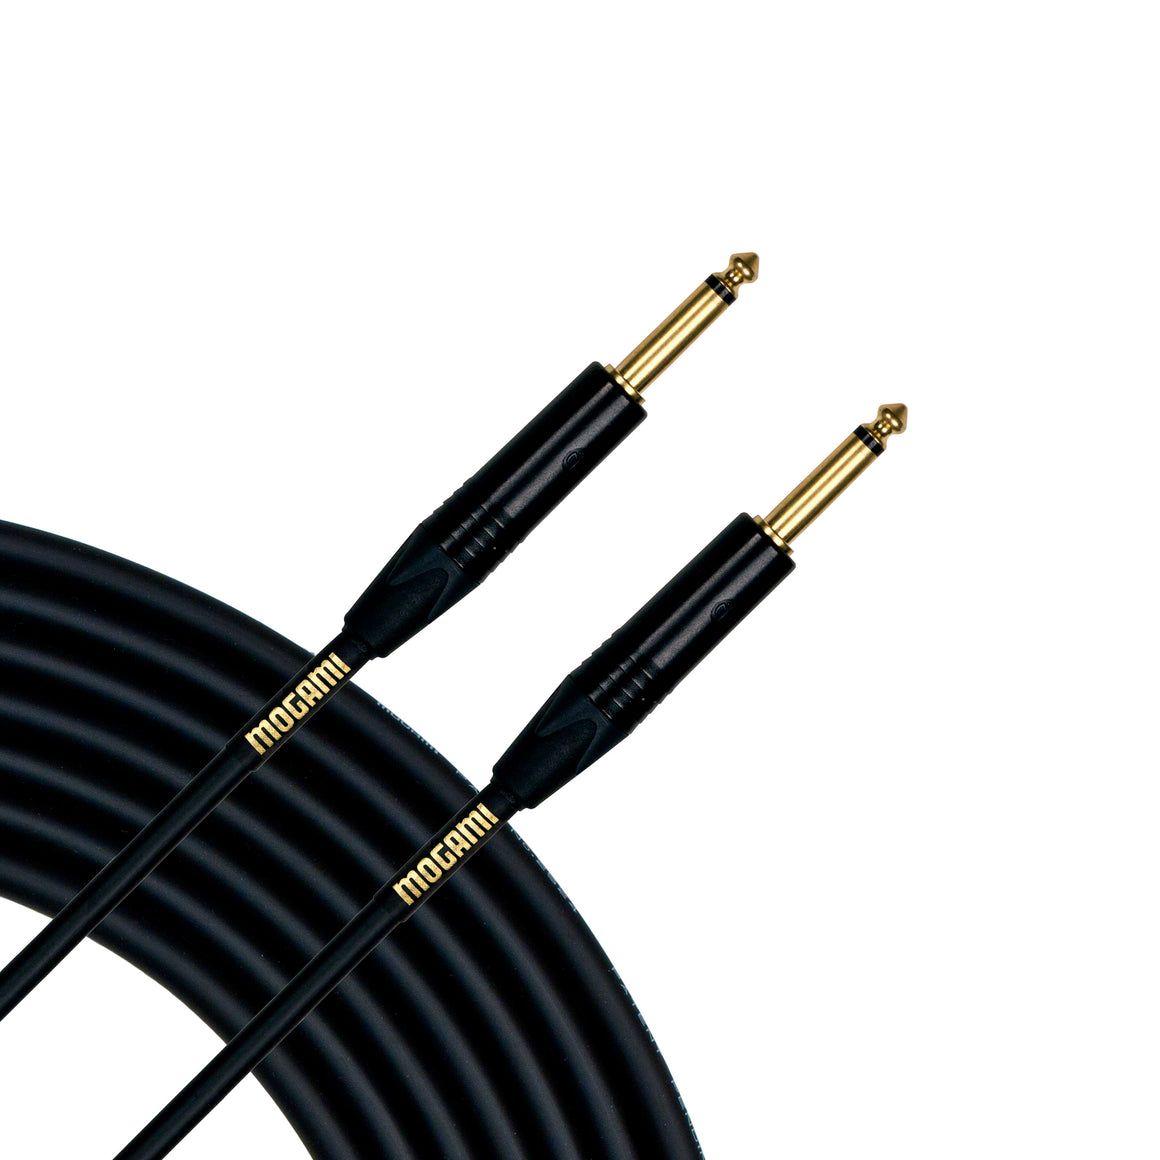 "Mogami Gold Instrument Cable 25, 1/4"" TS, 25' length, Straight - Straight"